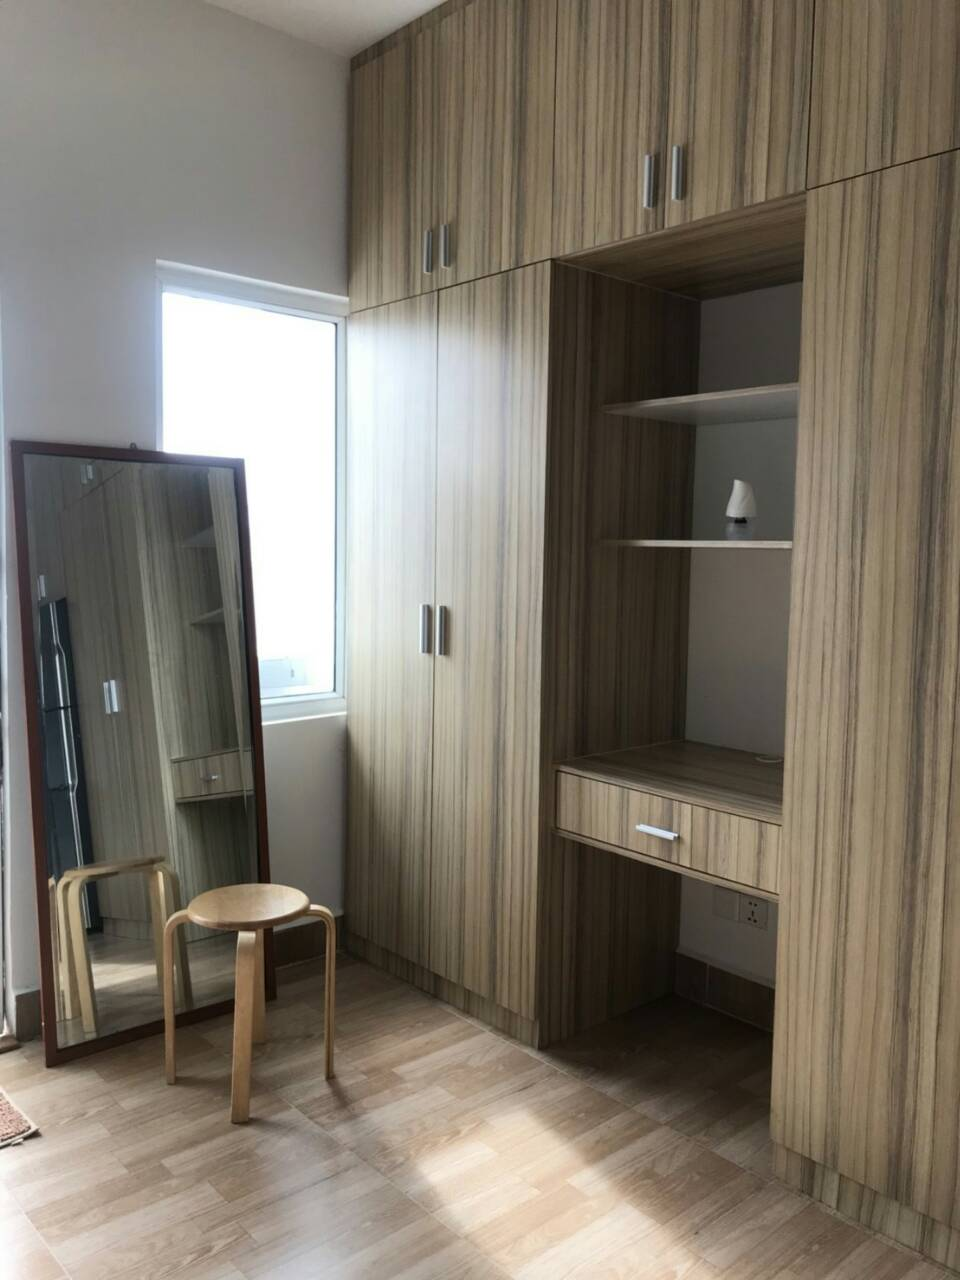 Condo for rent in Boeung Trabeck - 270$